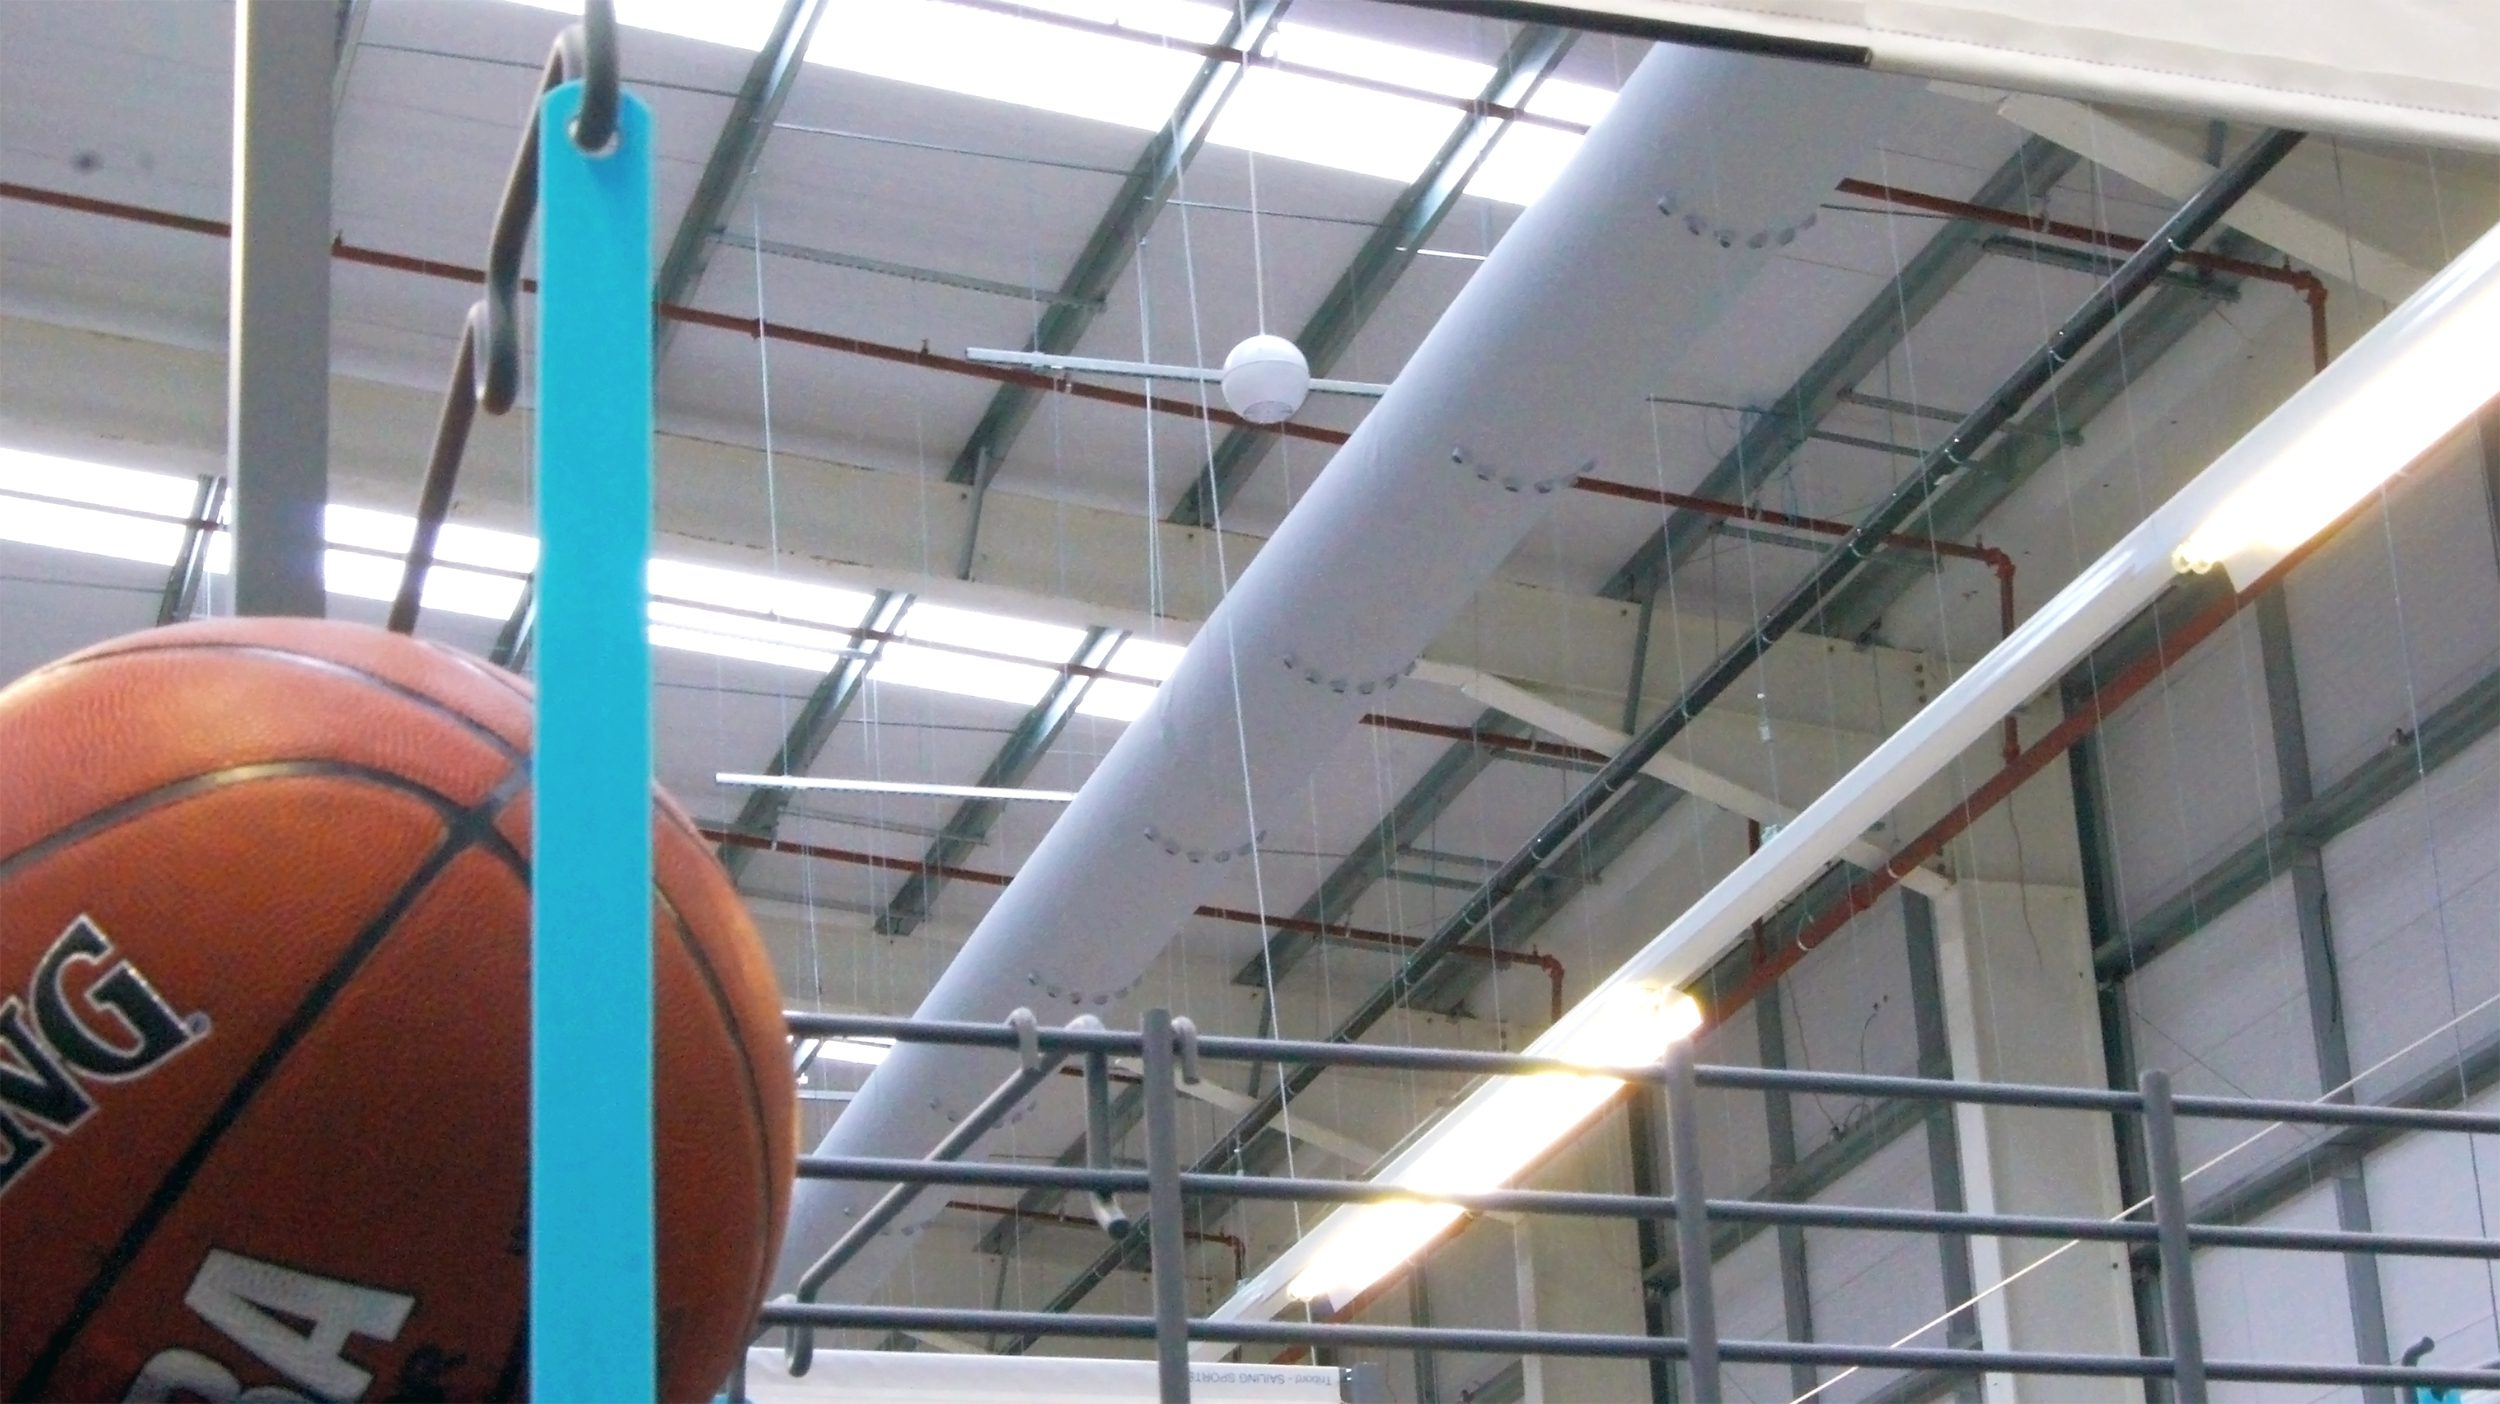 Prihoda fabric duct with nozzles at Decathlon